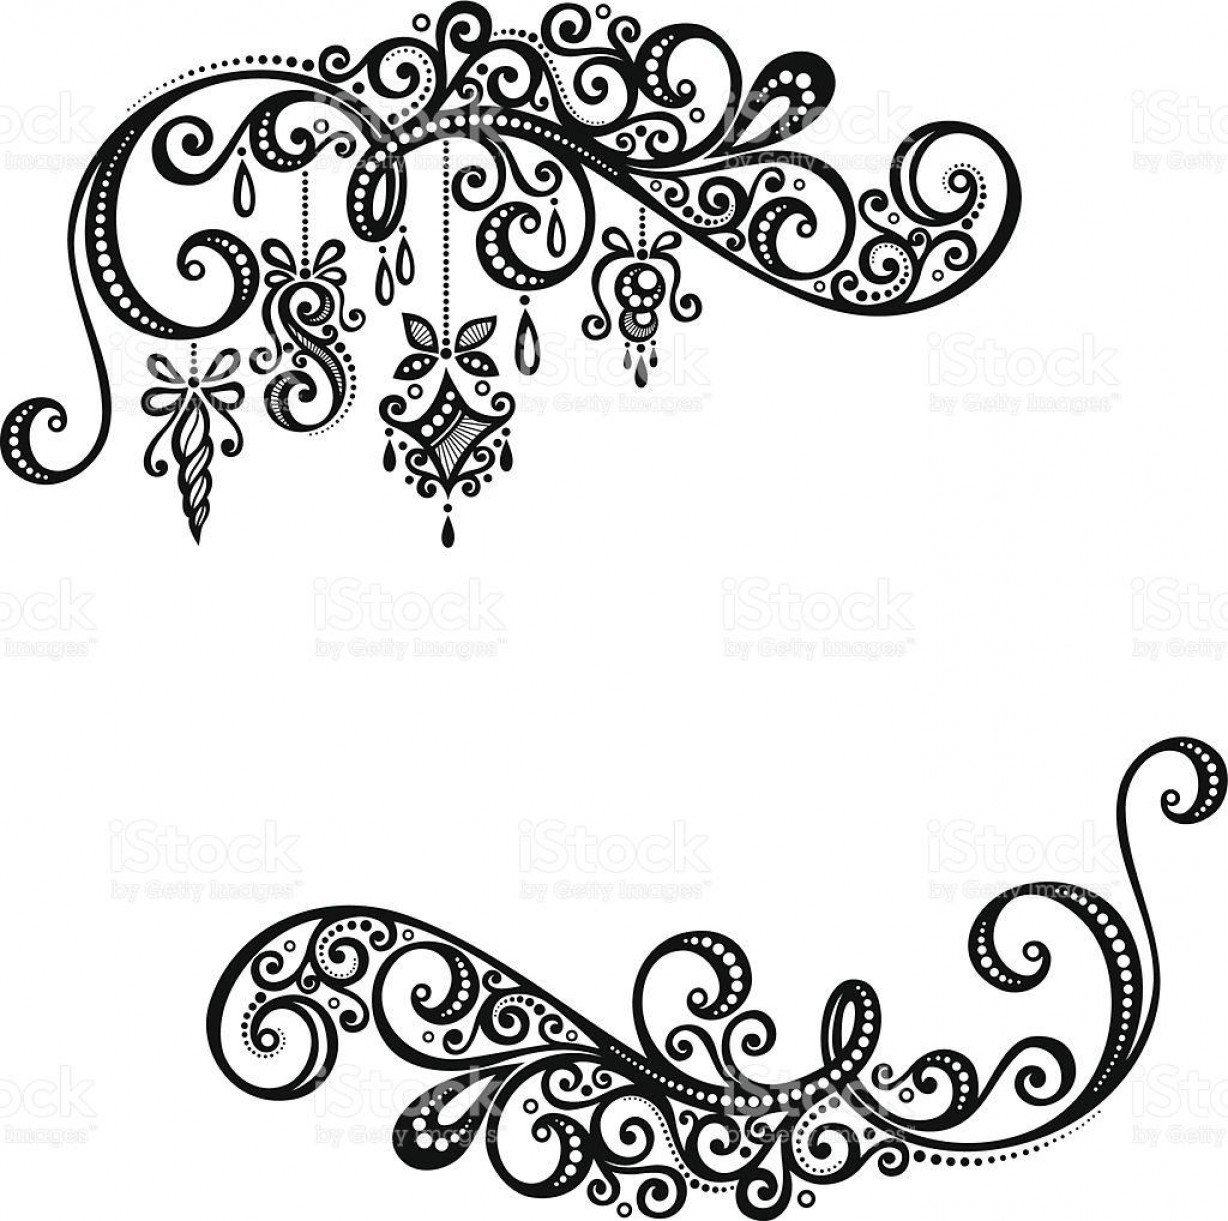 Vector Boarders Clip: Hd Black And White Thanksgiving Borders Vector Image